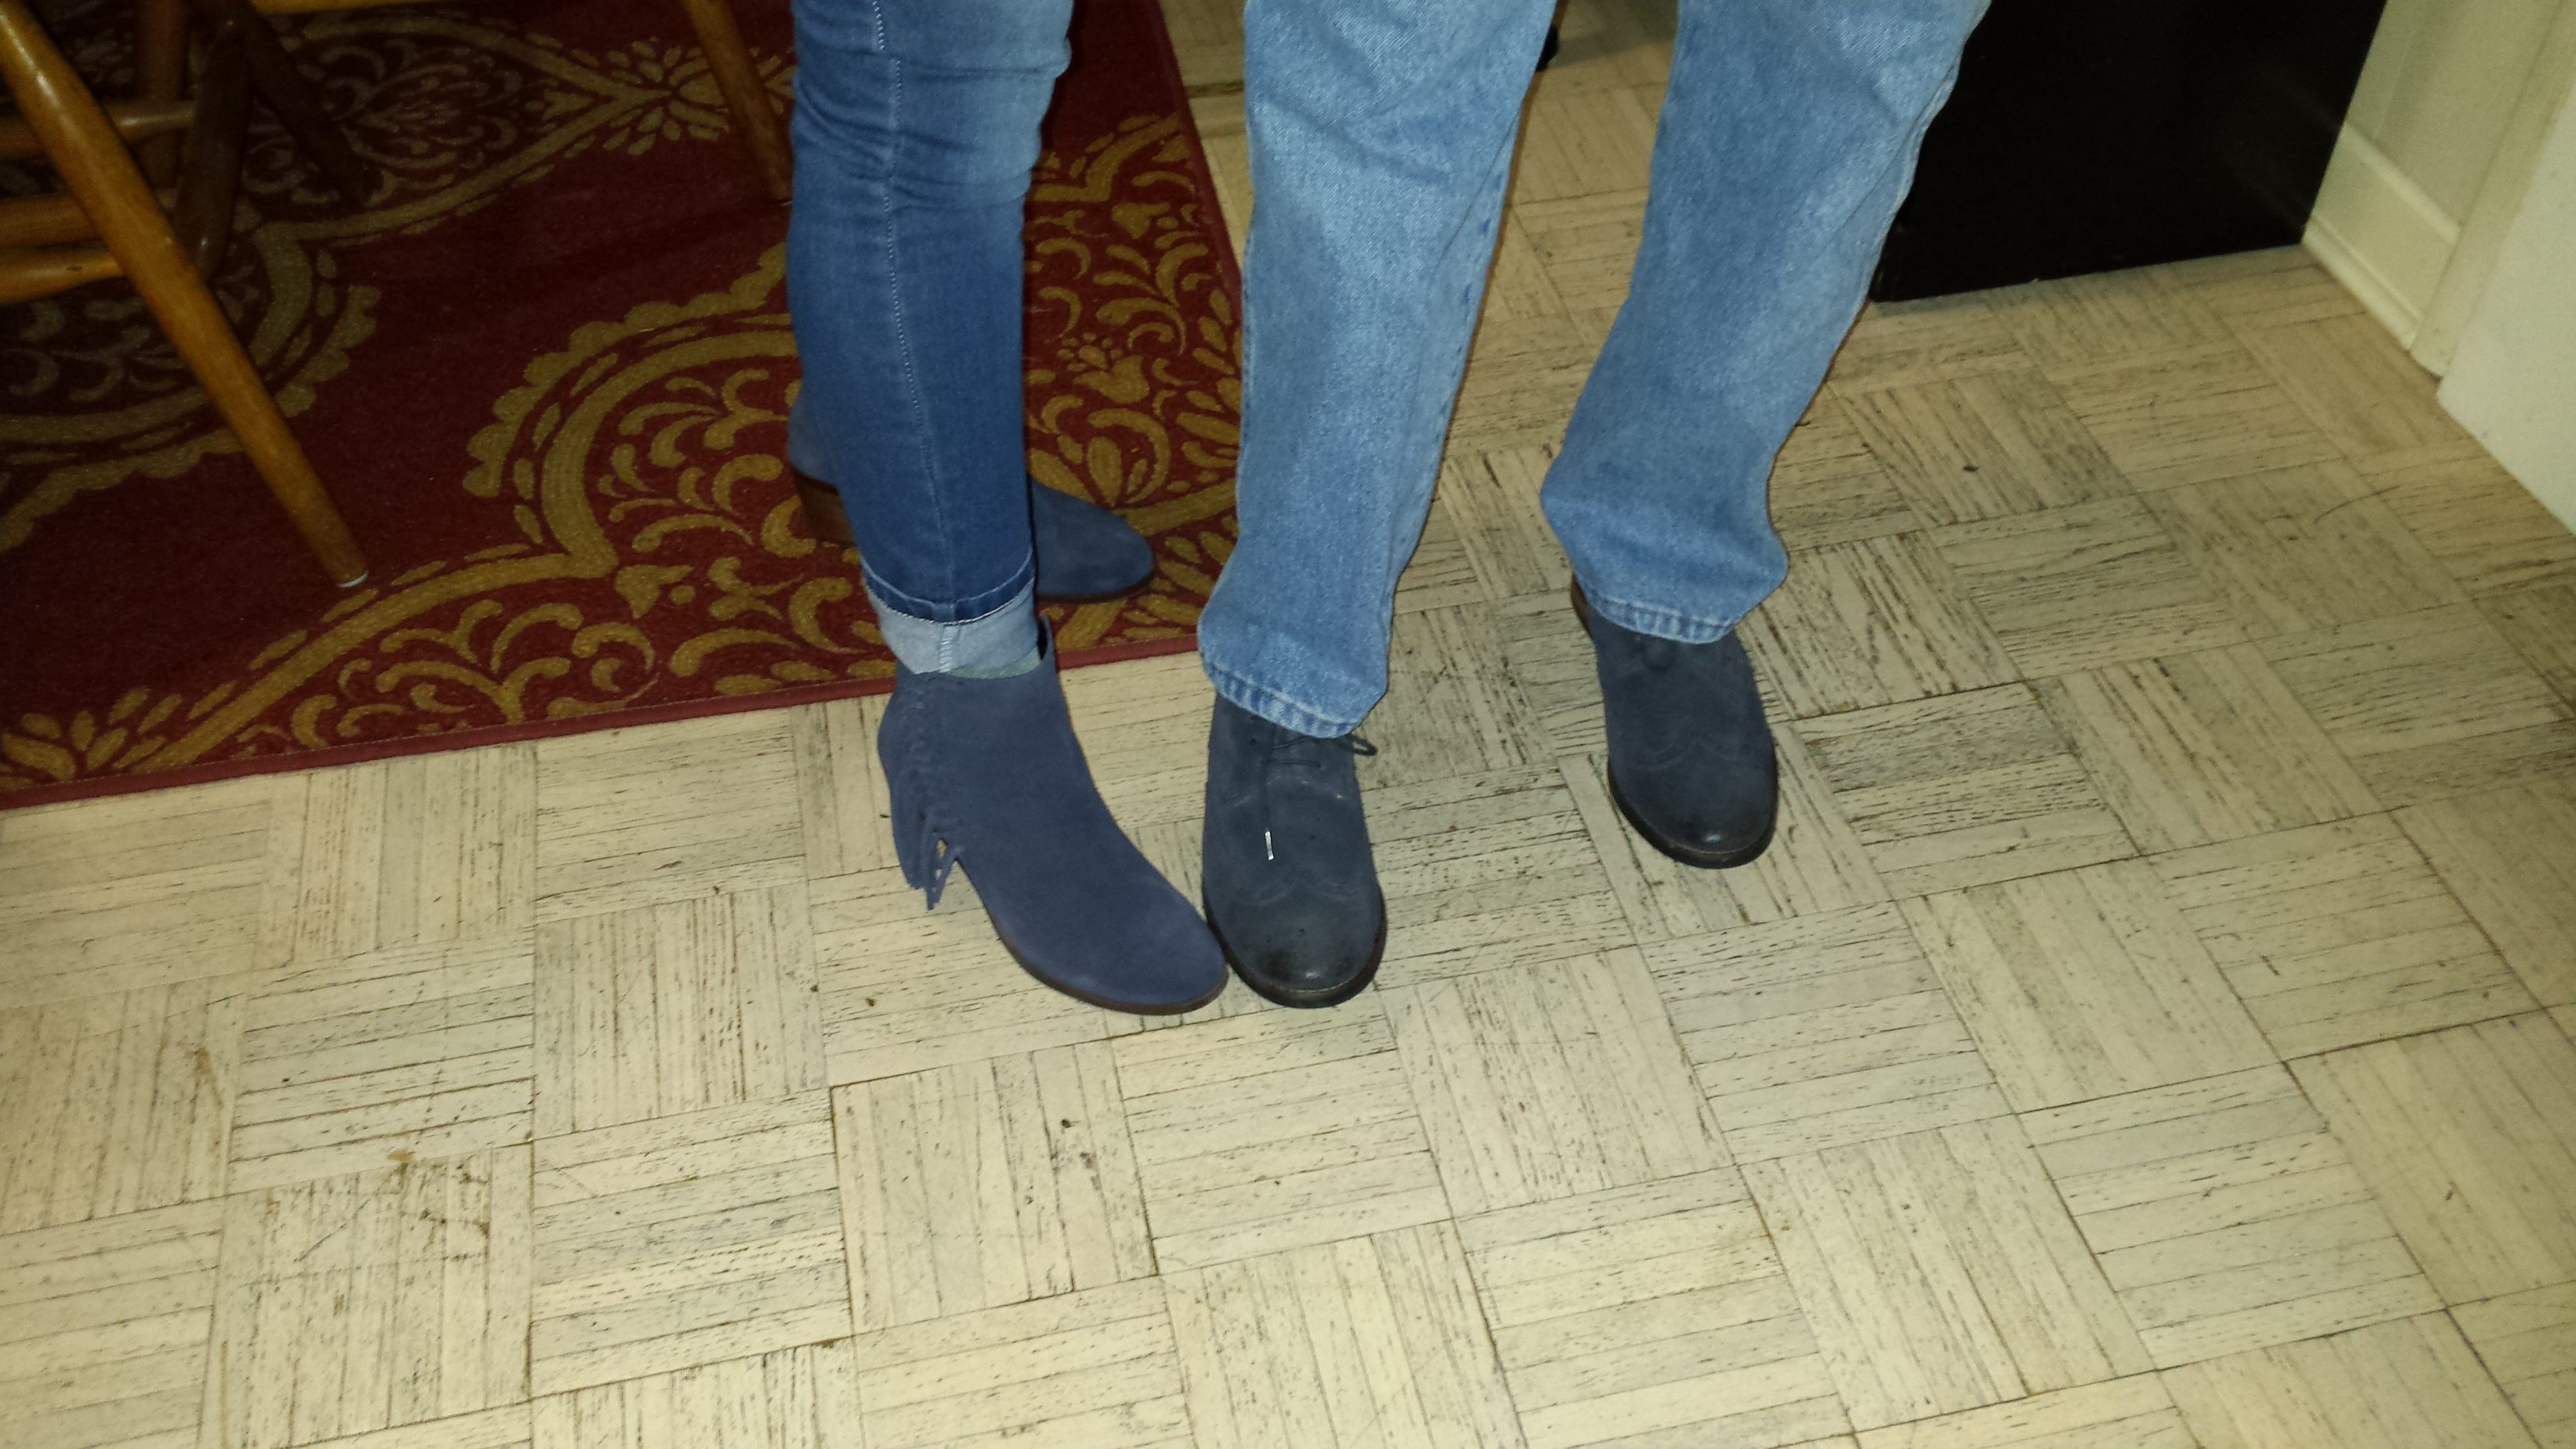 Who wears blue suede shoes?